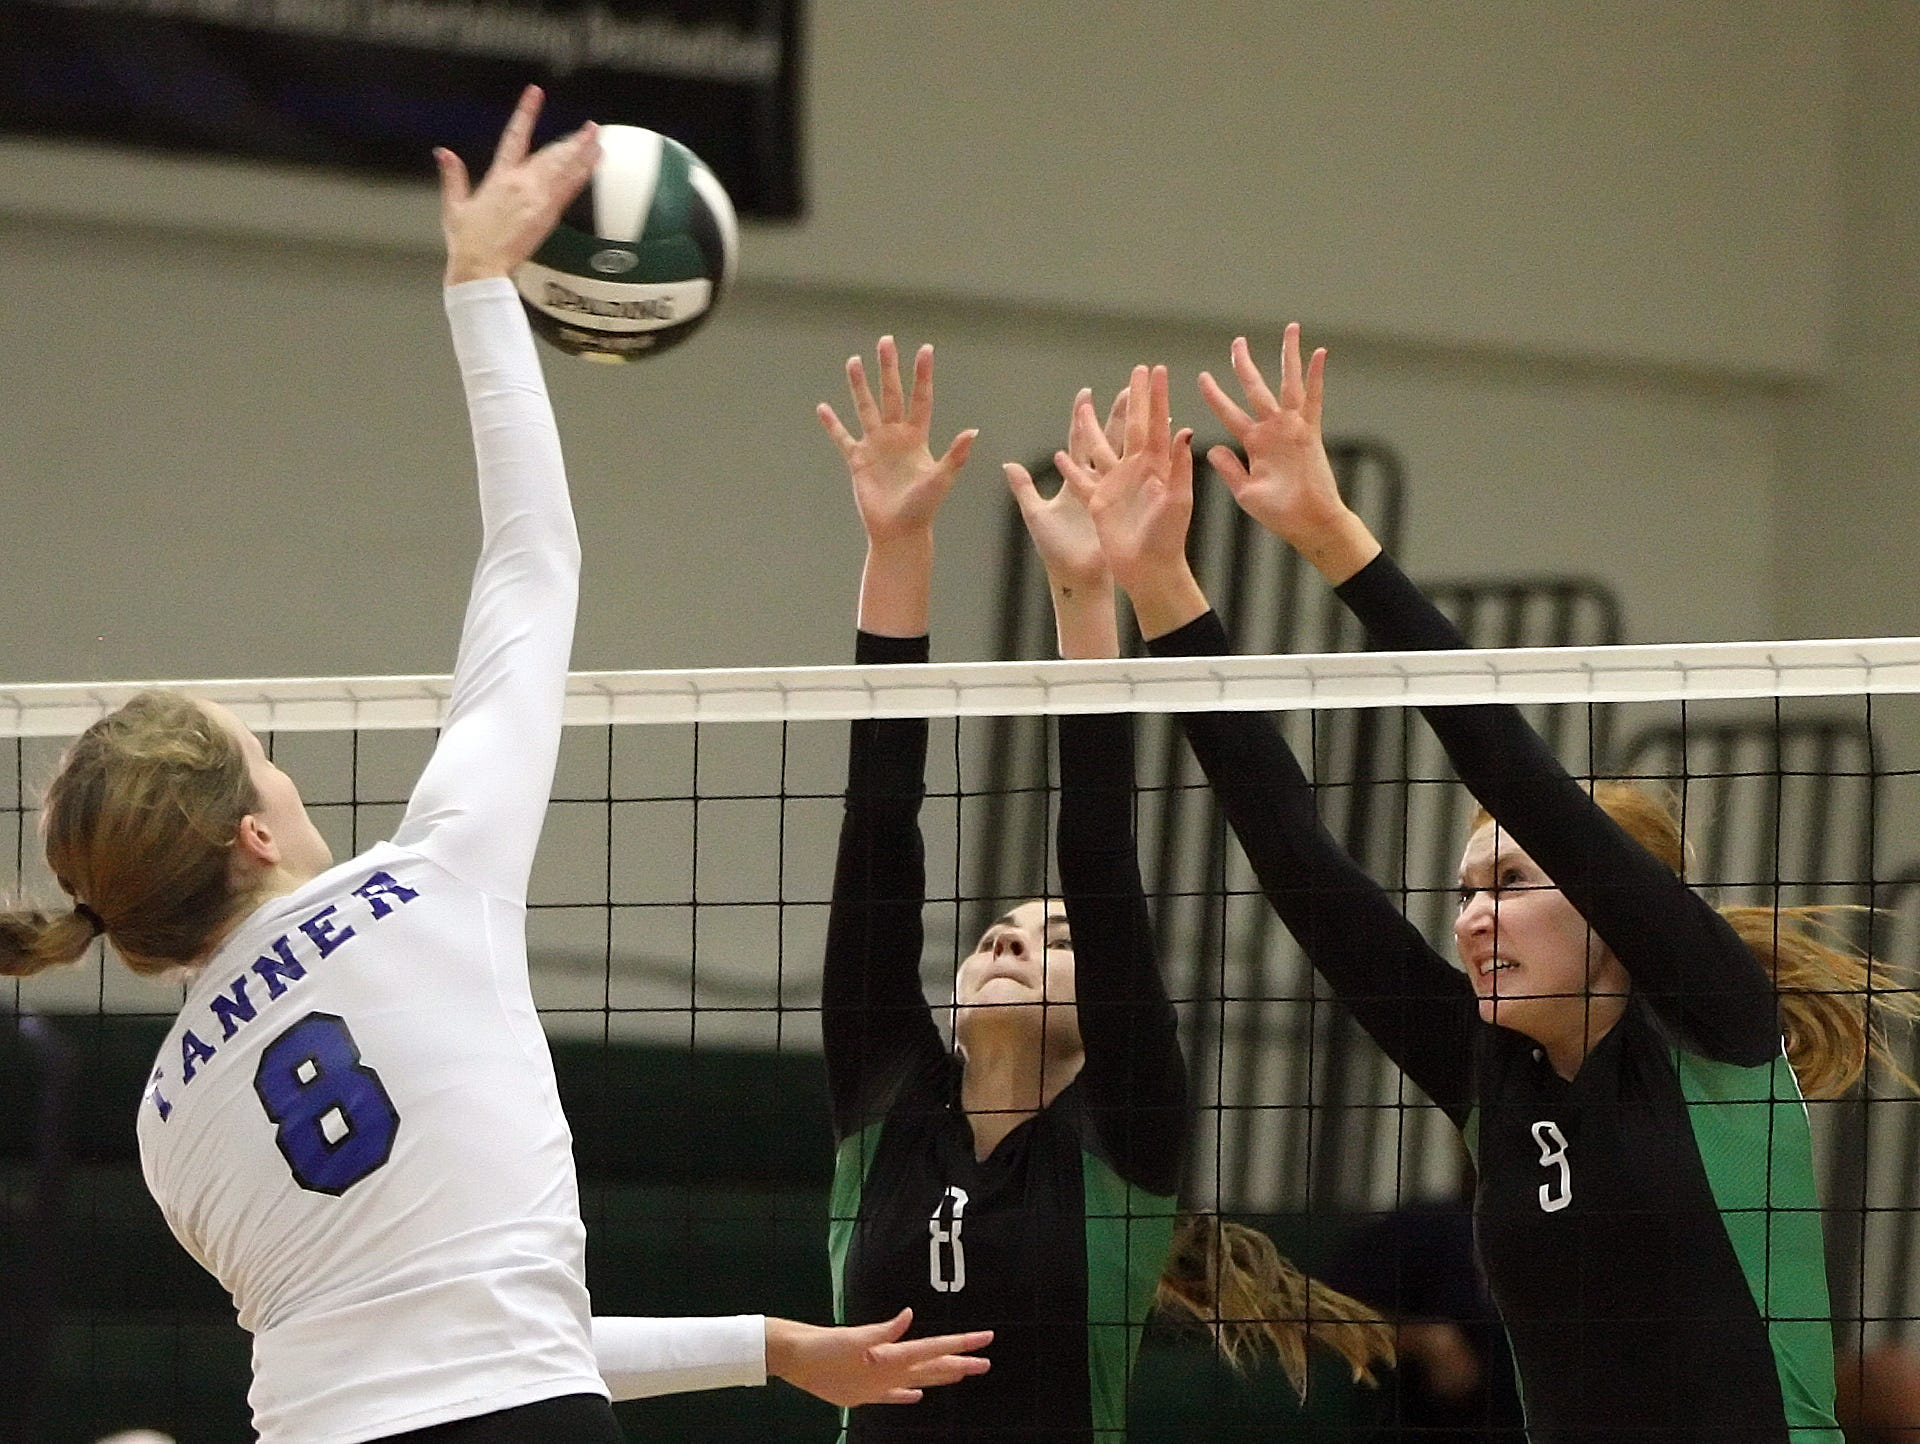 Fort Myers High School's Erin Gear and Kaitlin Stewart block Barron Collier's Julie Tanner's shot in the Region 6A-3 semifinal volleyball game Saturday at Fort Myers High School. Fort Myers beat Barron Collier 3-0.